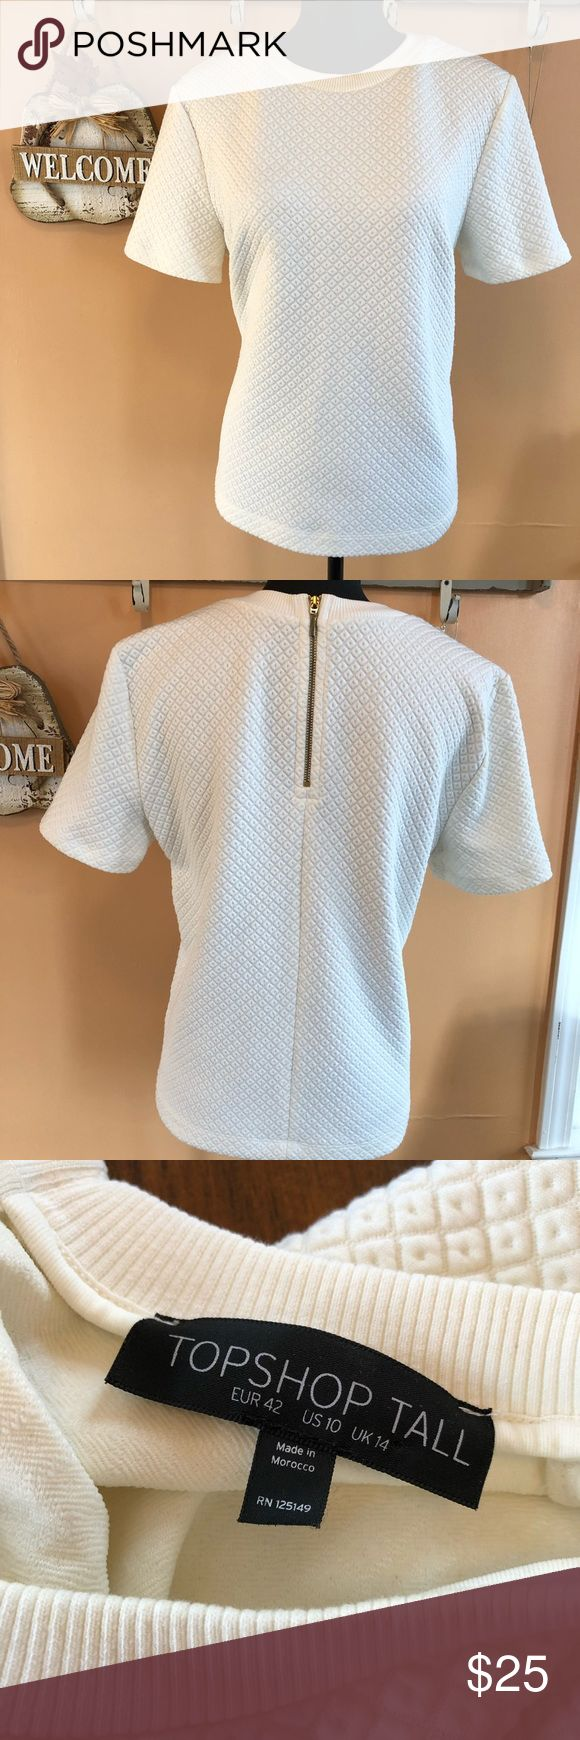 🌿Topshop Tall white sweater size 10🌿 Wonderful condition. Barely looks worn. Comes from a smoke free home. Soft stretchy material. Bust 20 inches length 24 inches. topshop tall Tops